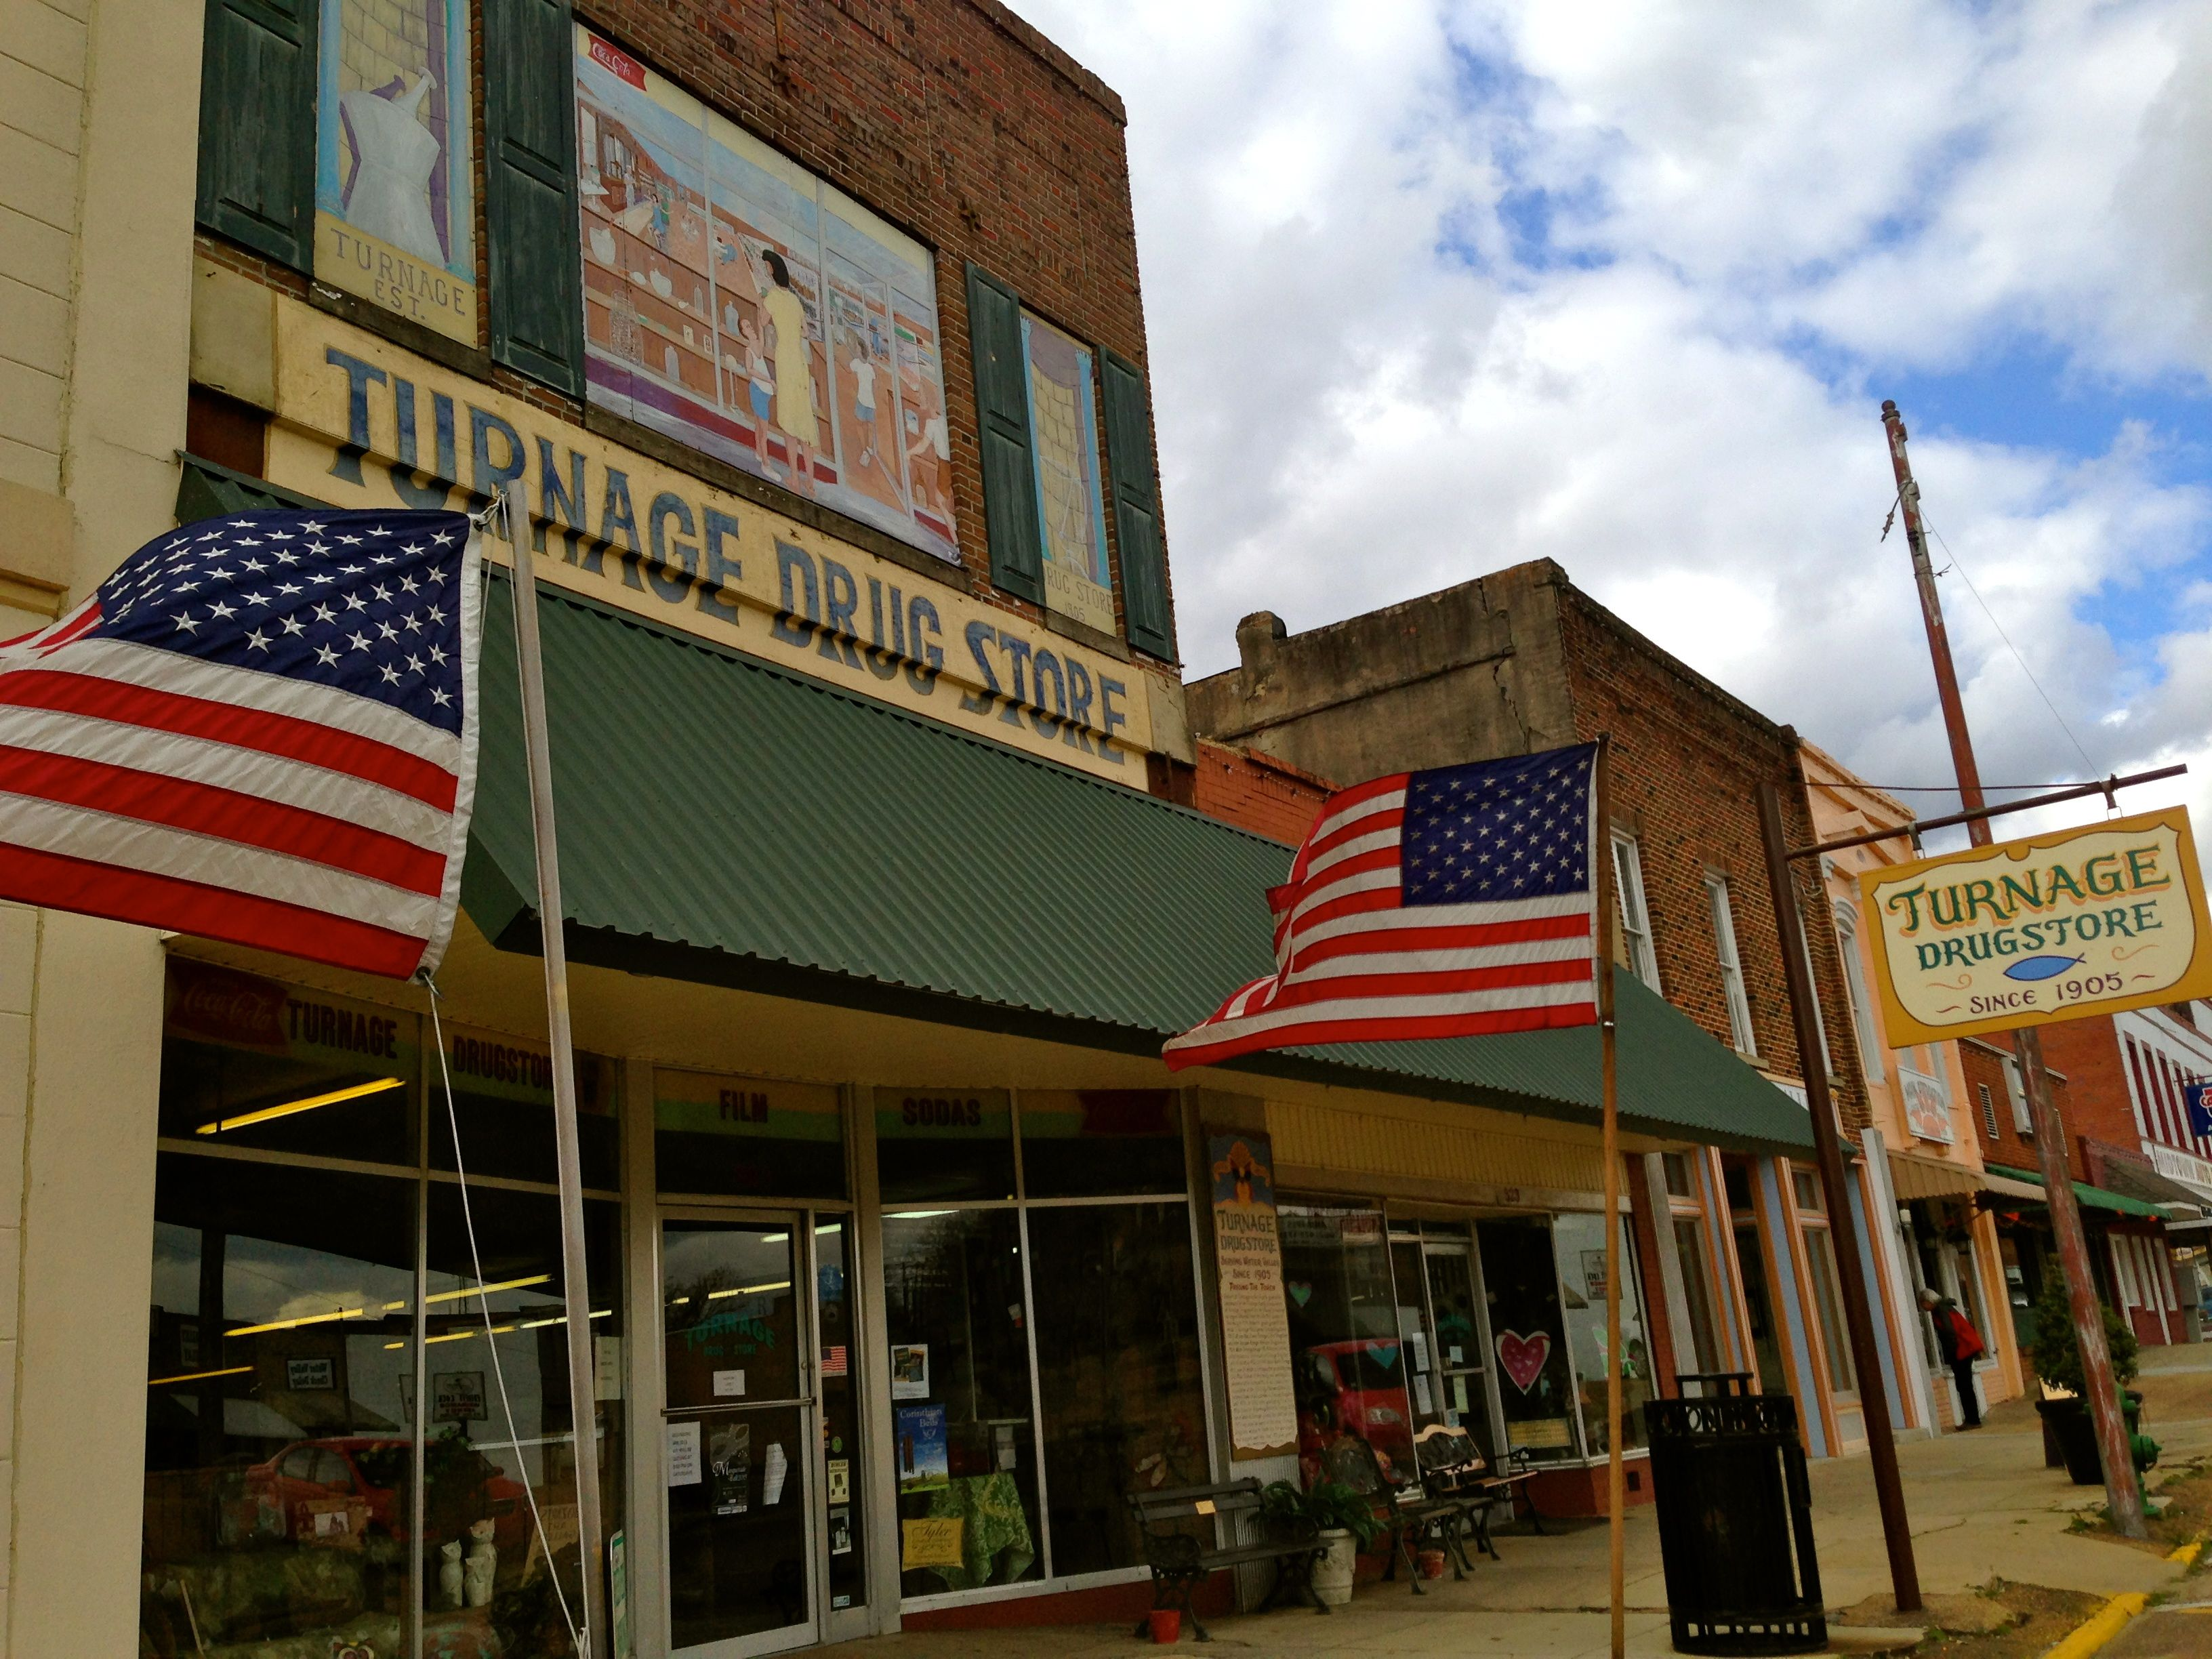 Turnage Drug Store in Water Valley